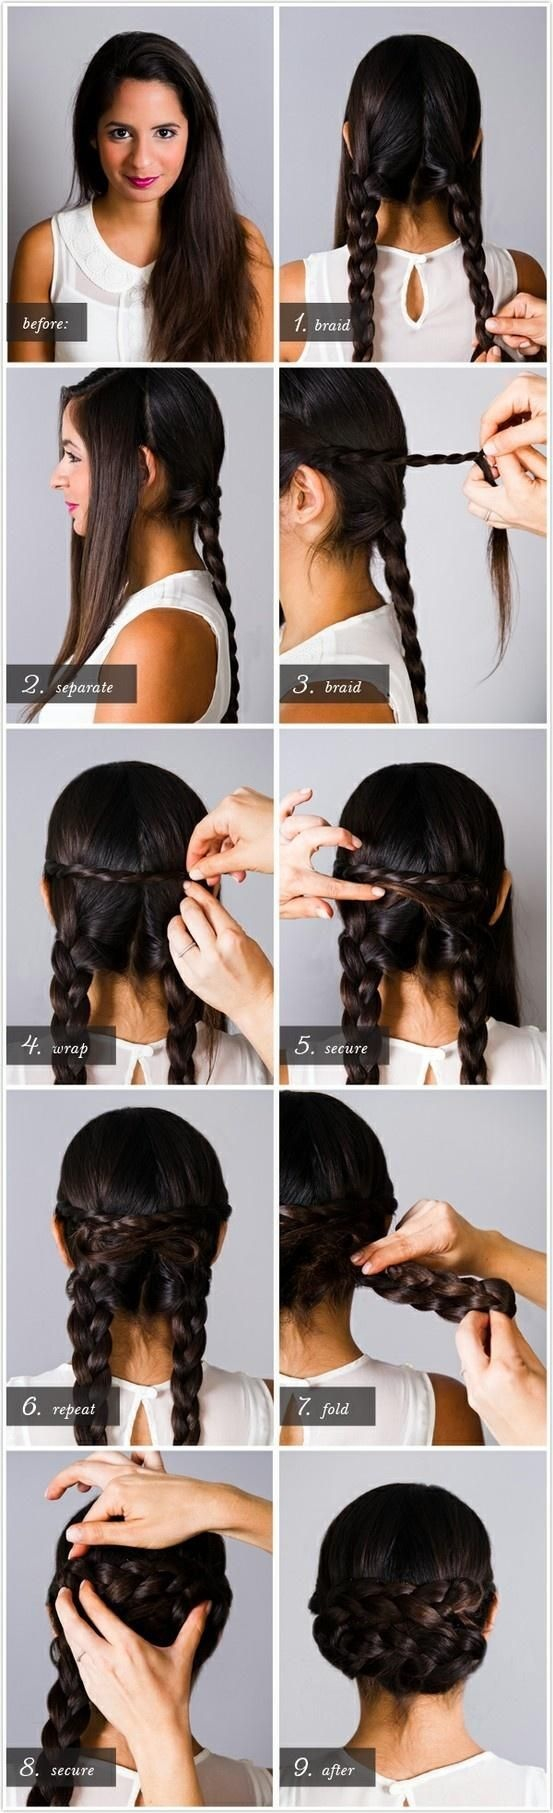 exciting new intricate braid updo hairstyles easy hairstyles